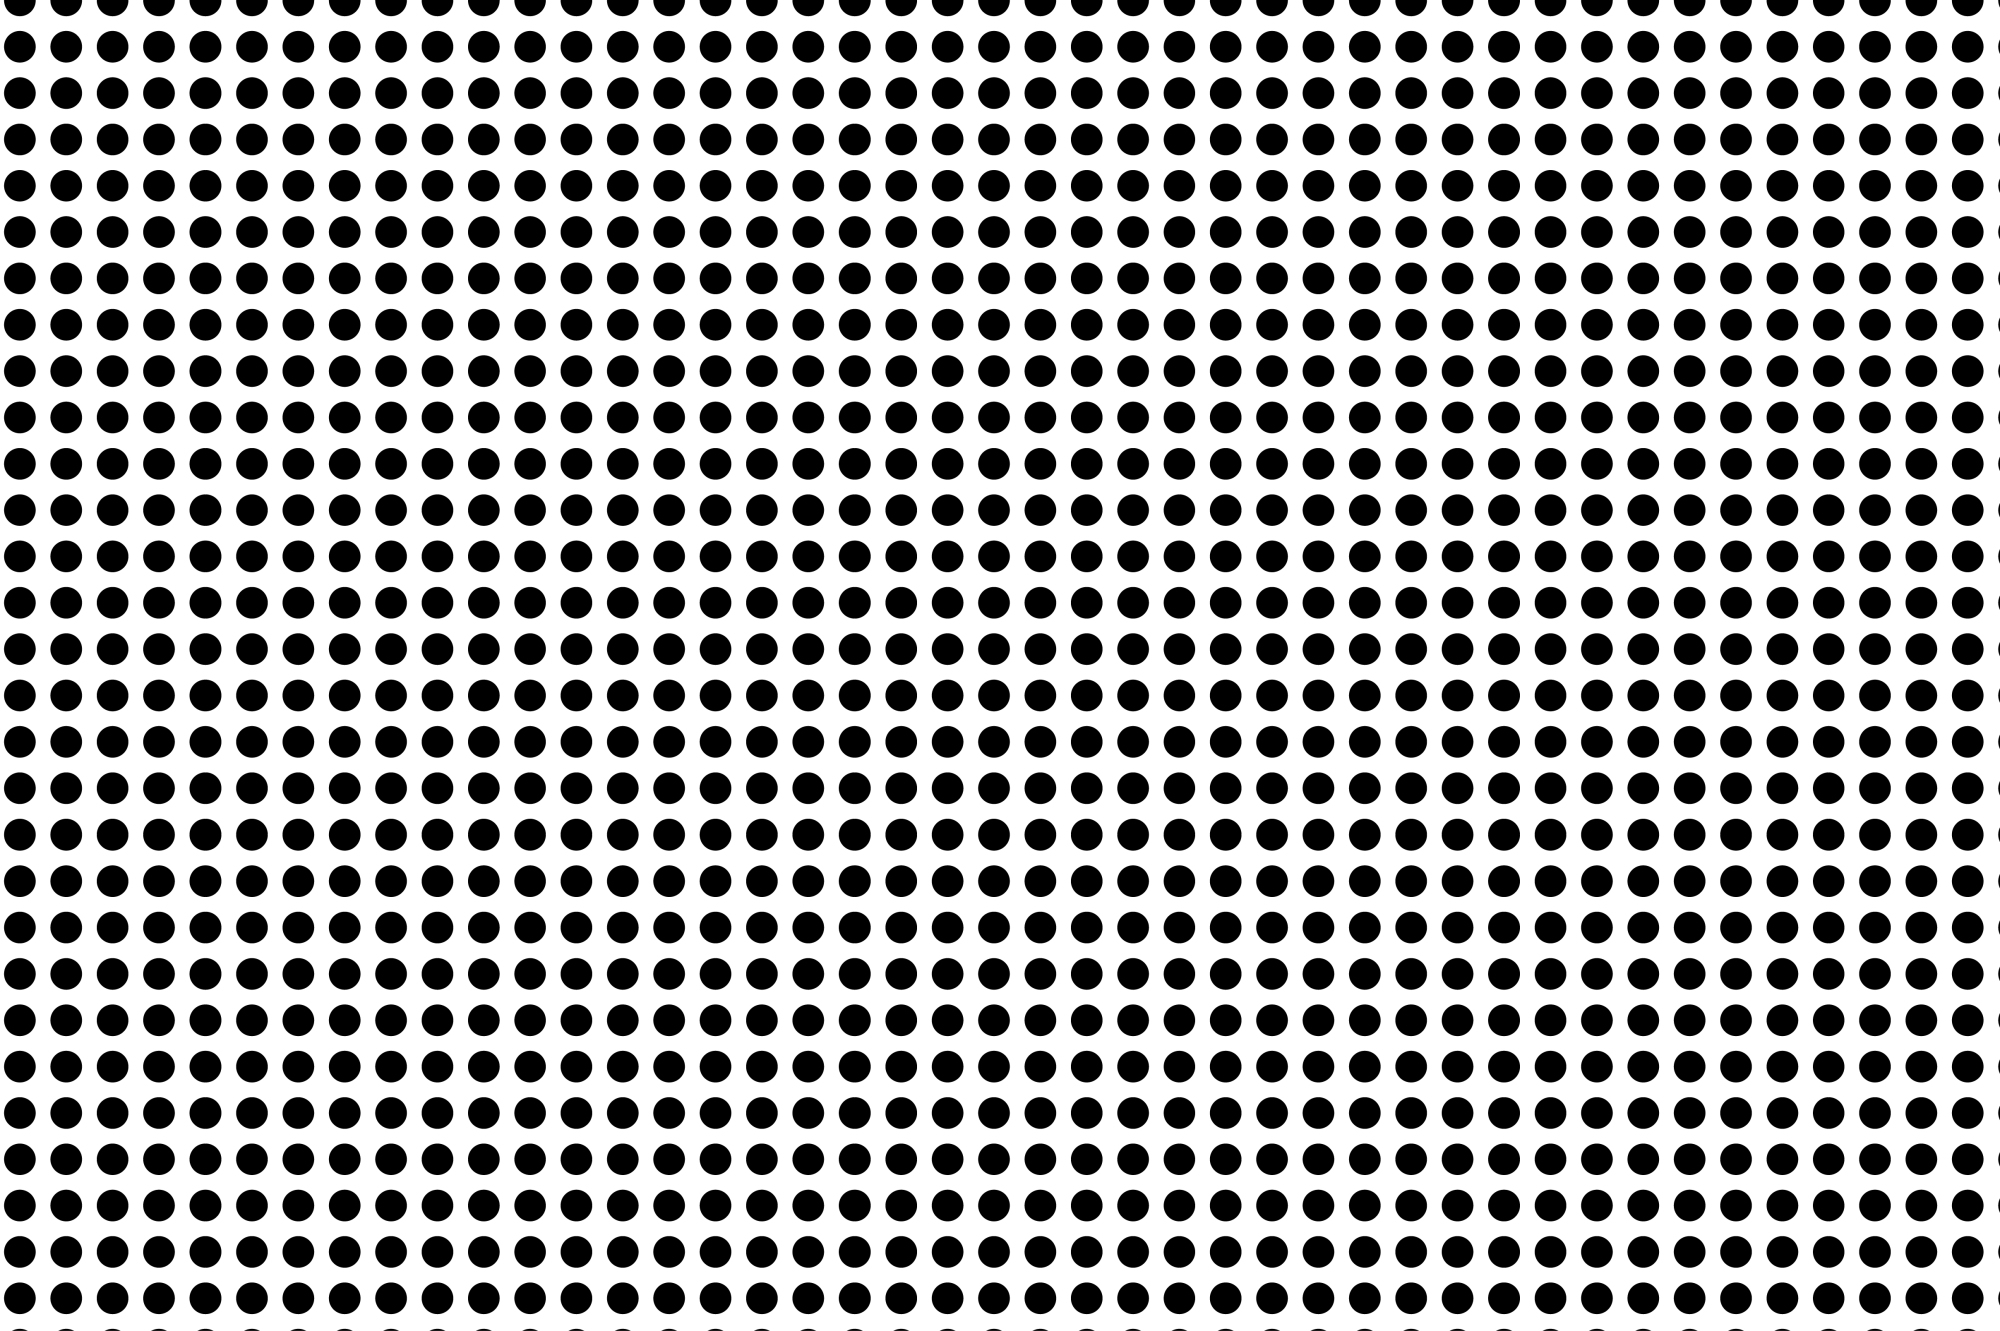 Set of dotted seamless patterns. example image 16